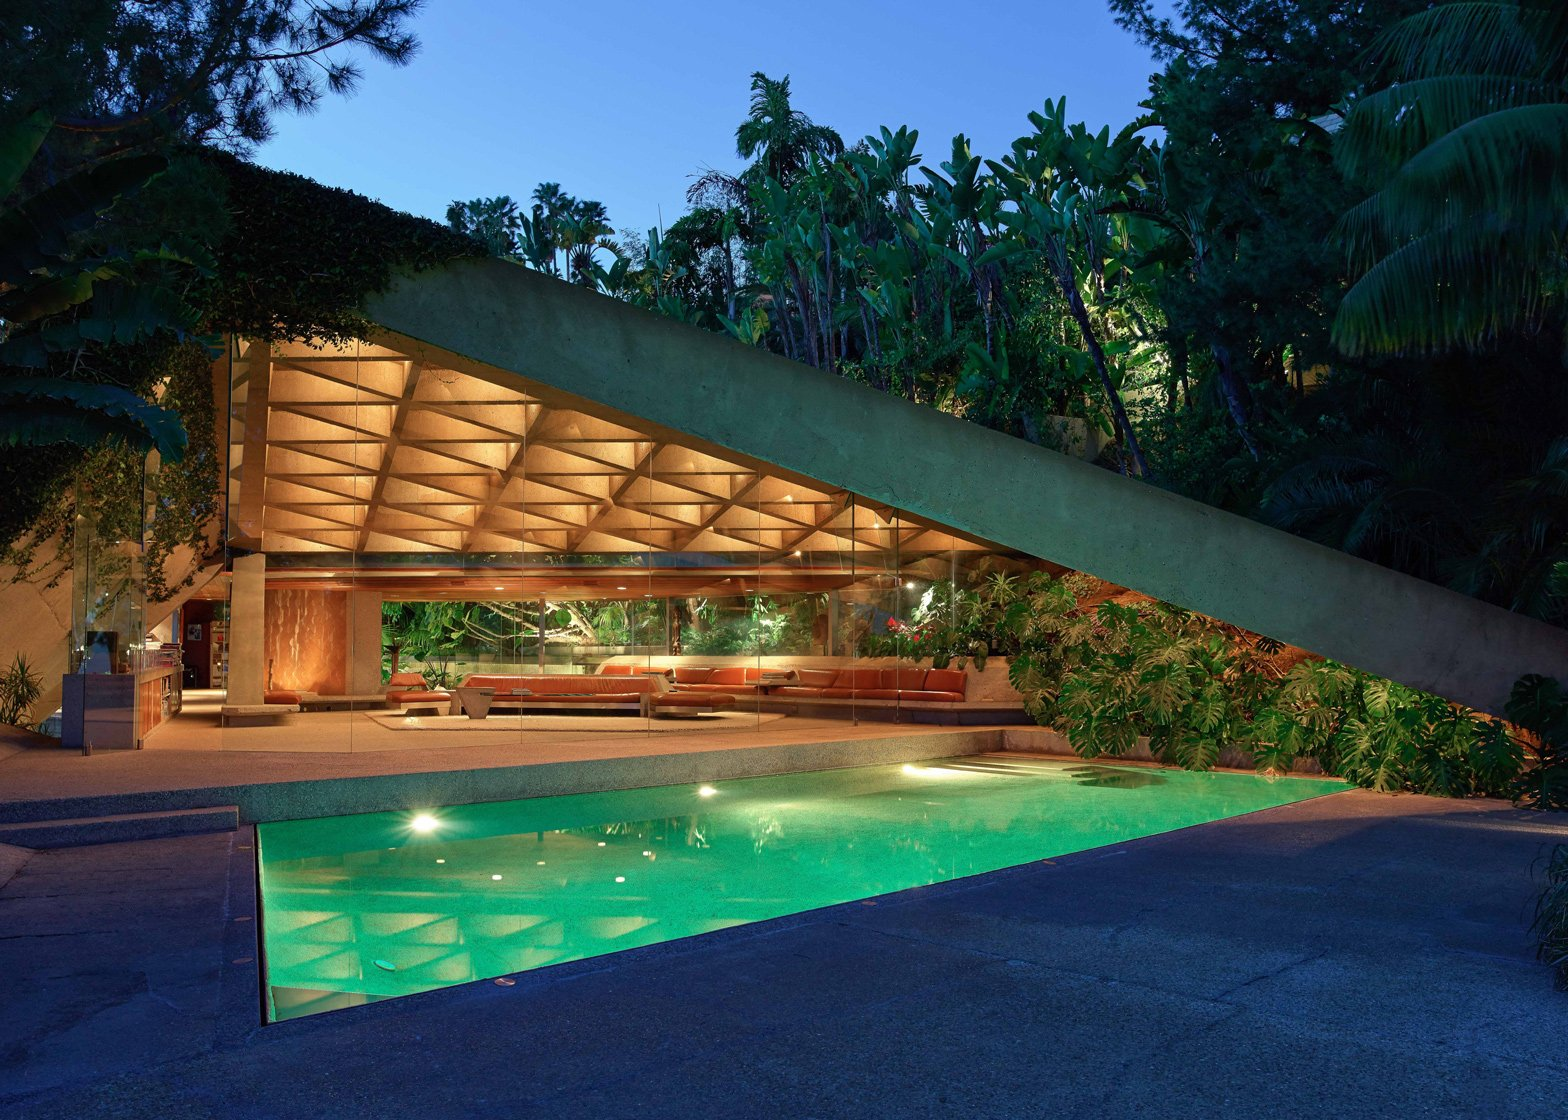 John Lautner's Big Lebowski house gifted to the Los Angeles County Museum of Art